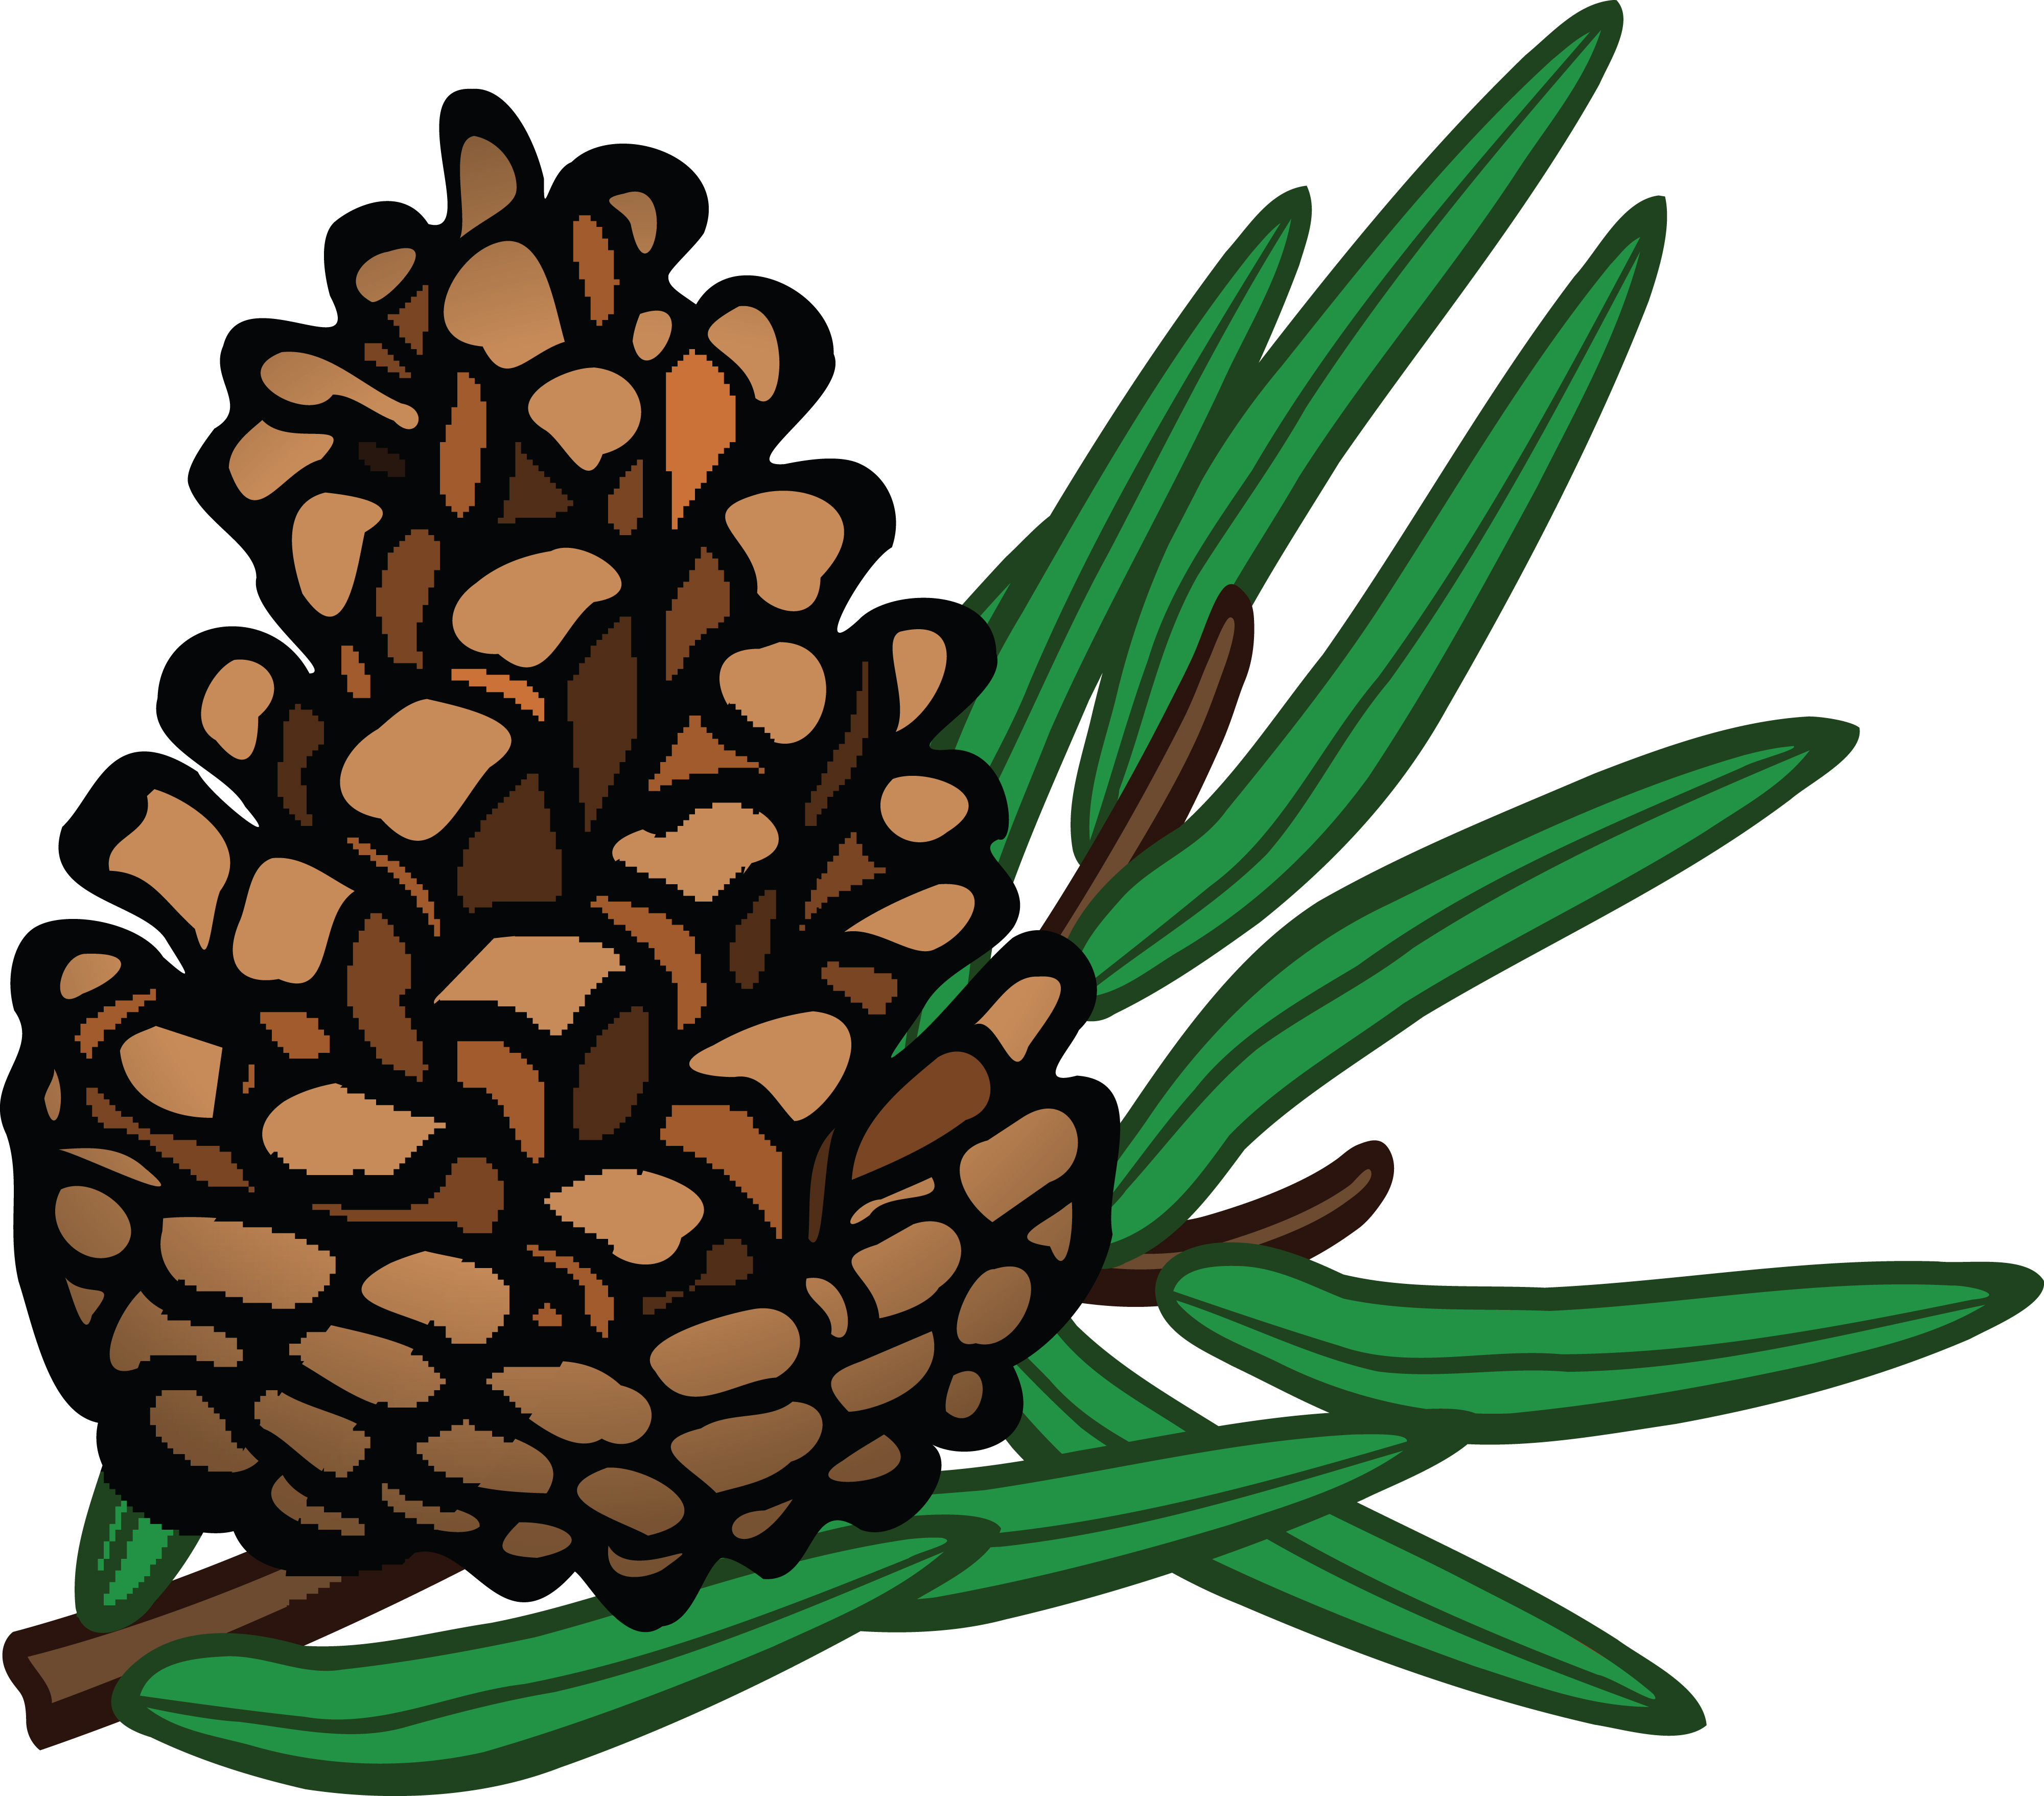 Free Clipart Of A pinecone.